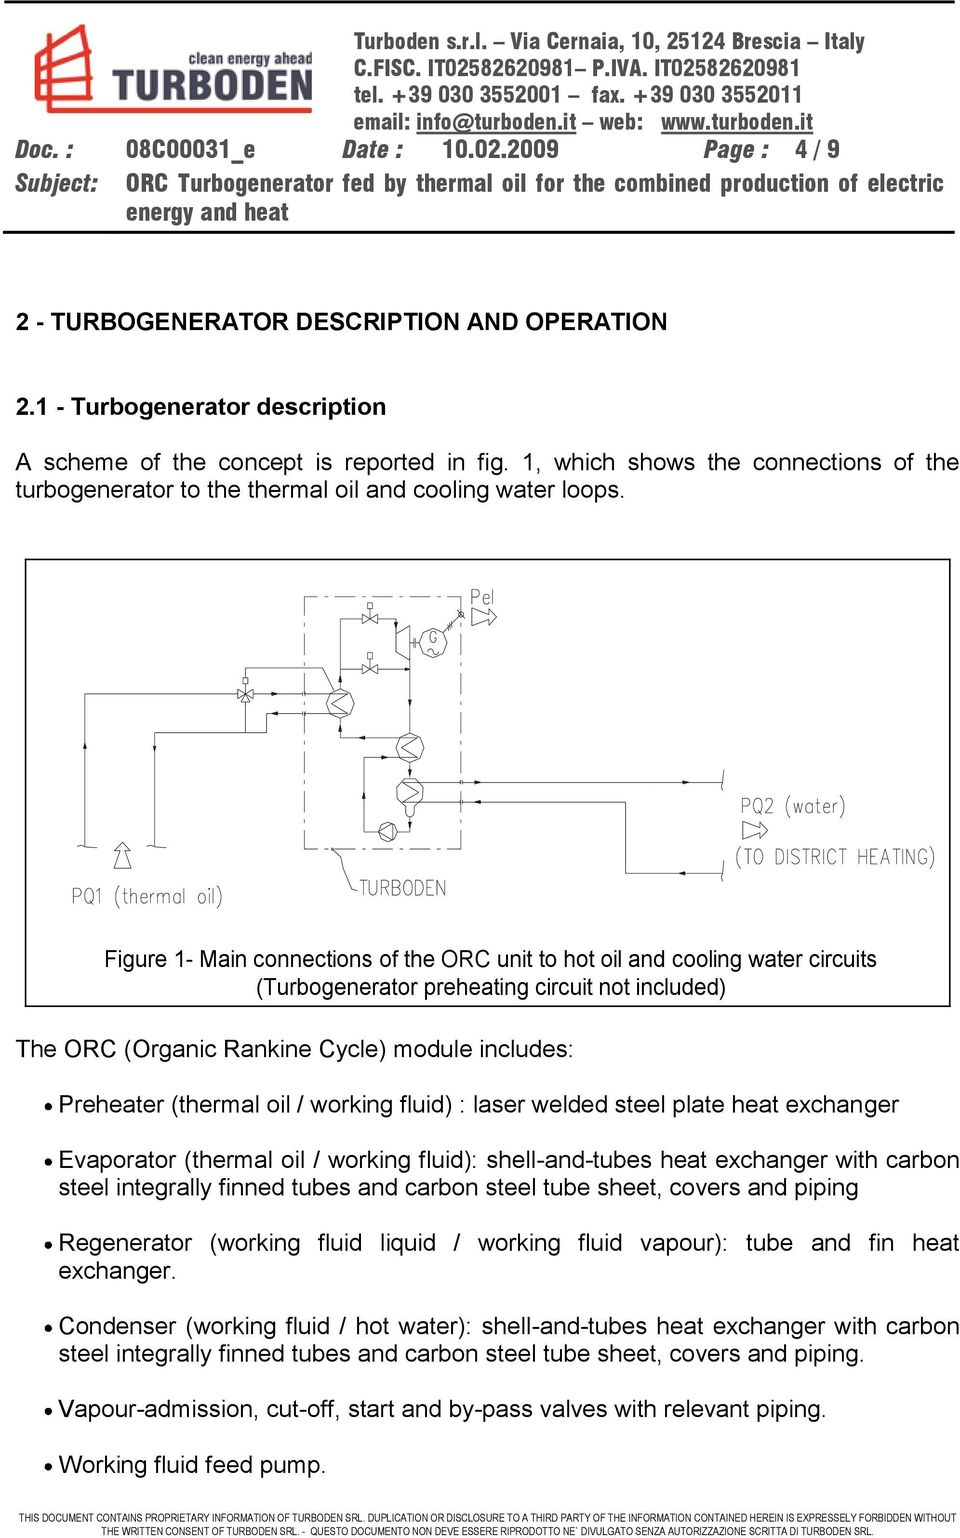 Figure 1- Main connections of the ORC unit to hot oil and cooling water circuits (Turbogenerator preheating circuit not included) The ORC (Organic Rankine Cycle) module includes: Preheater (thermal